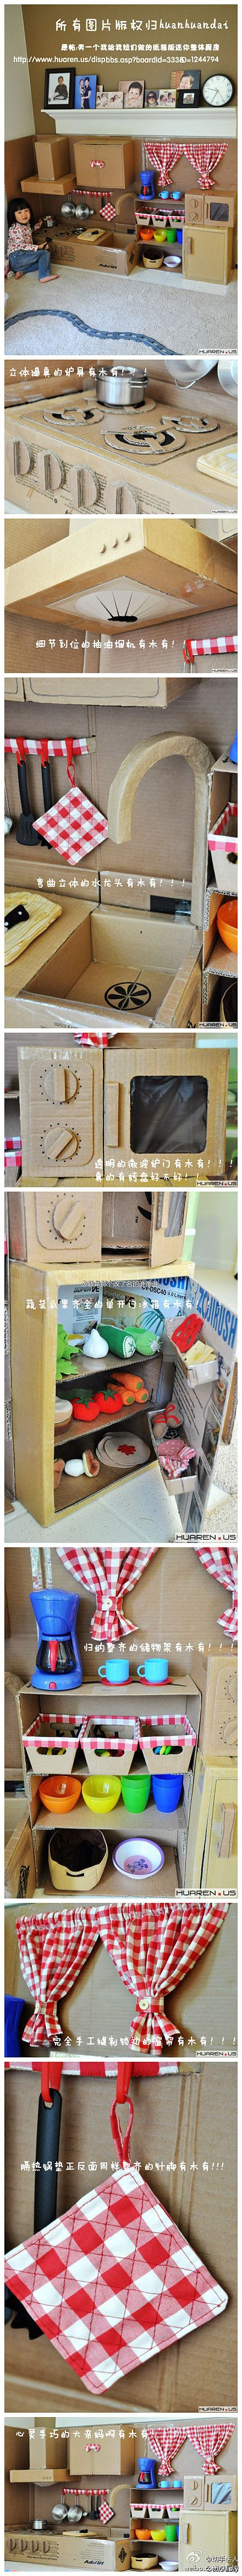 DIY cardboard kitchen. GENI!